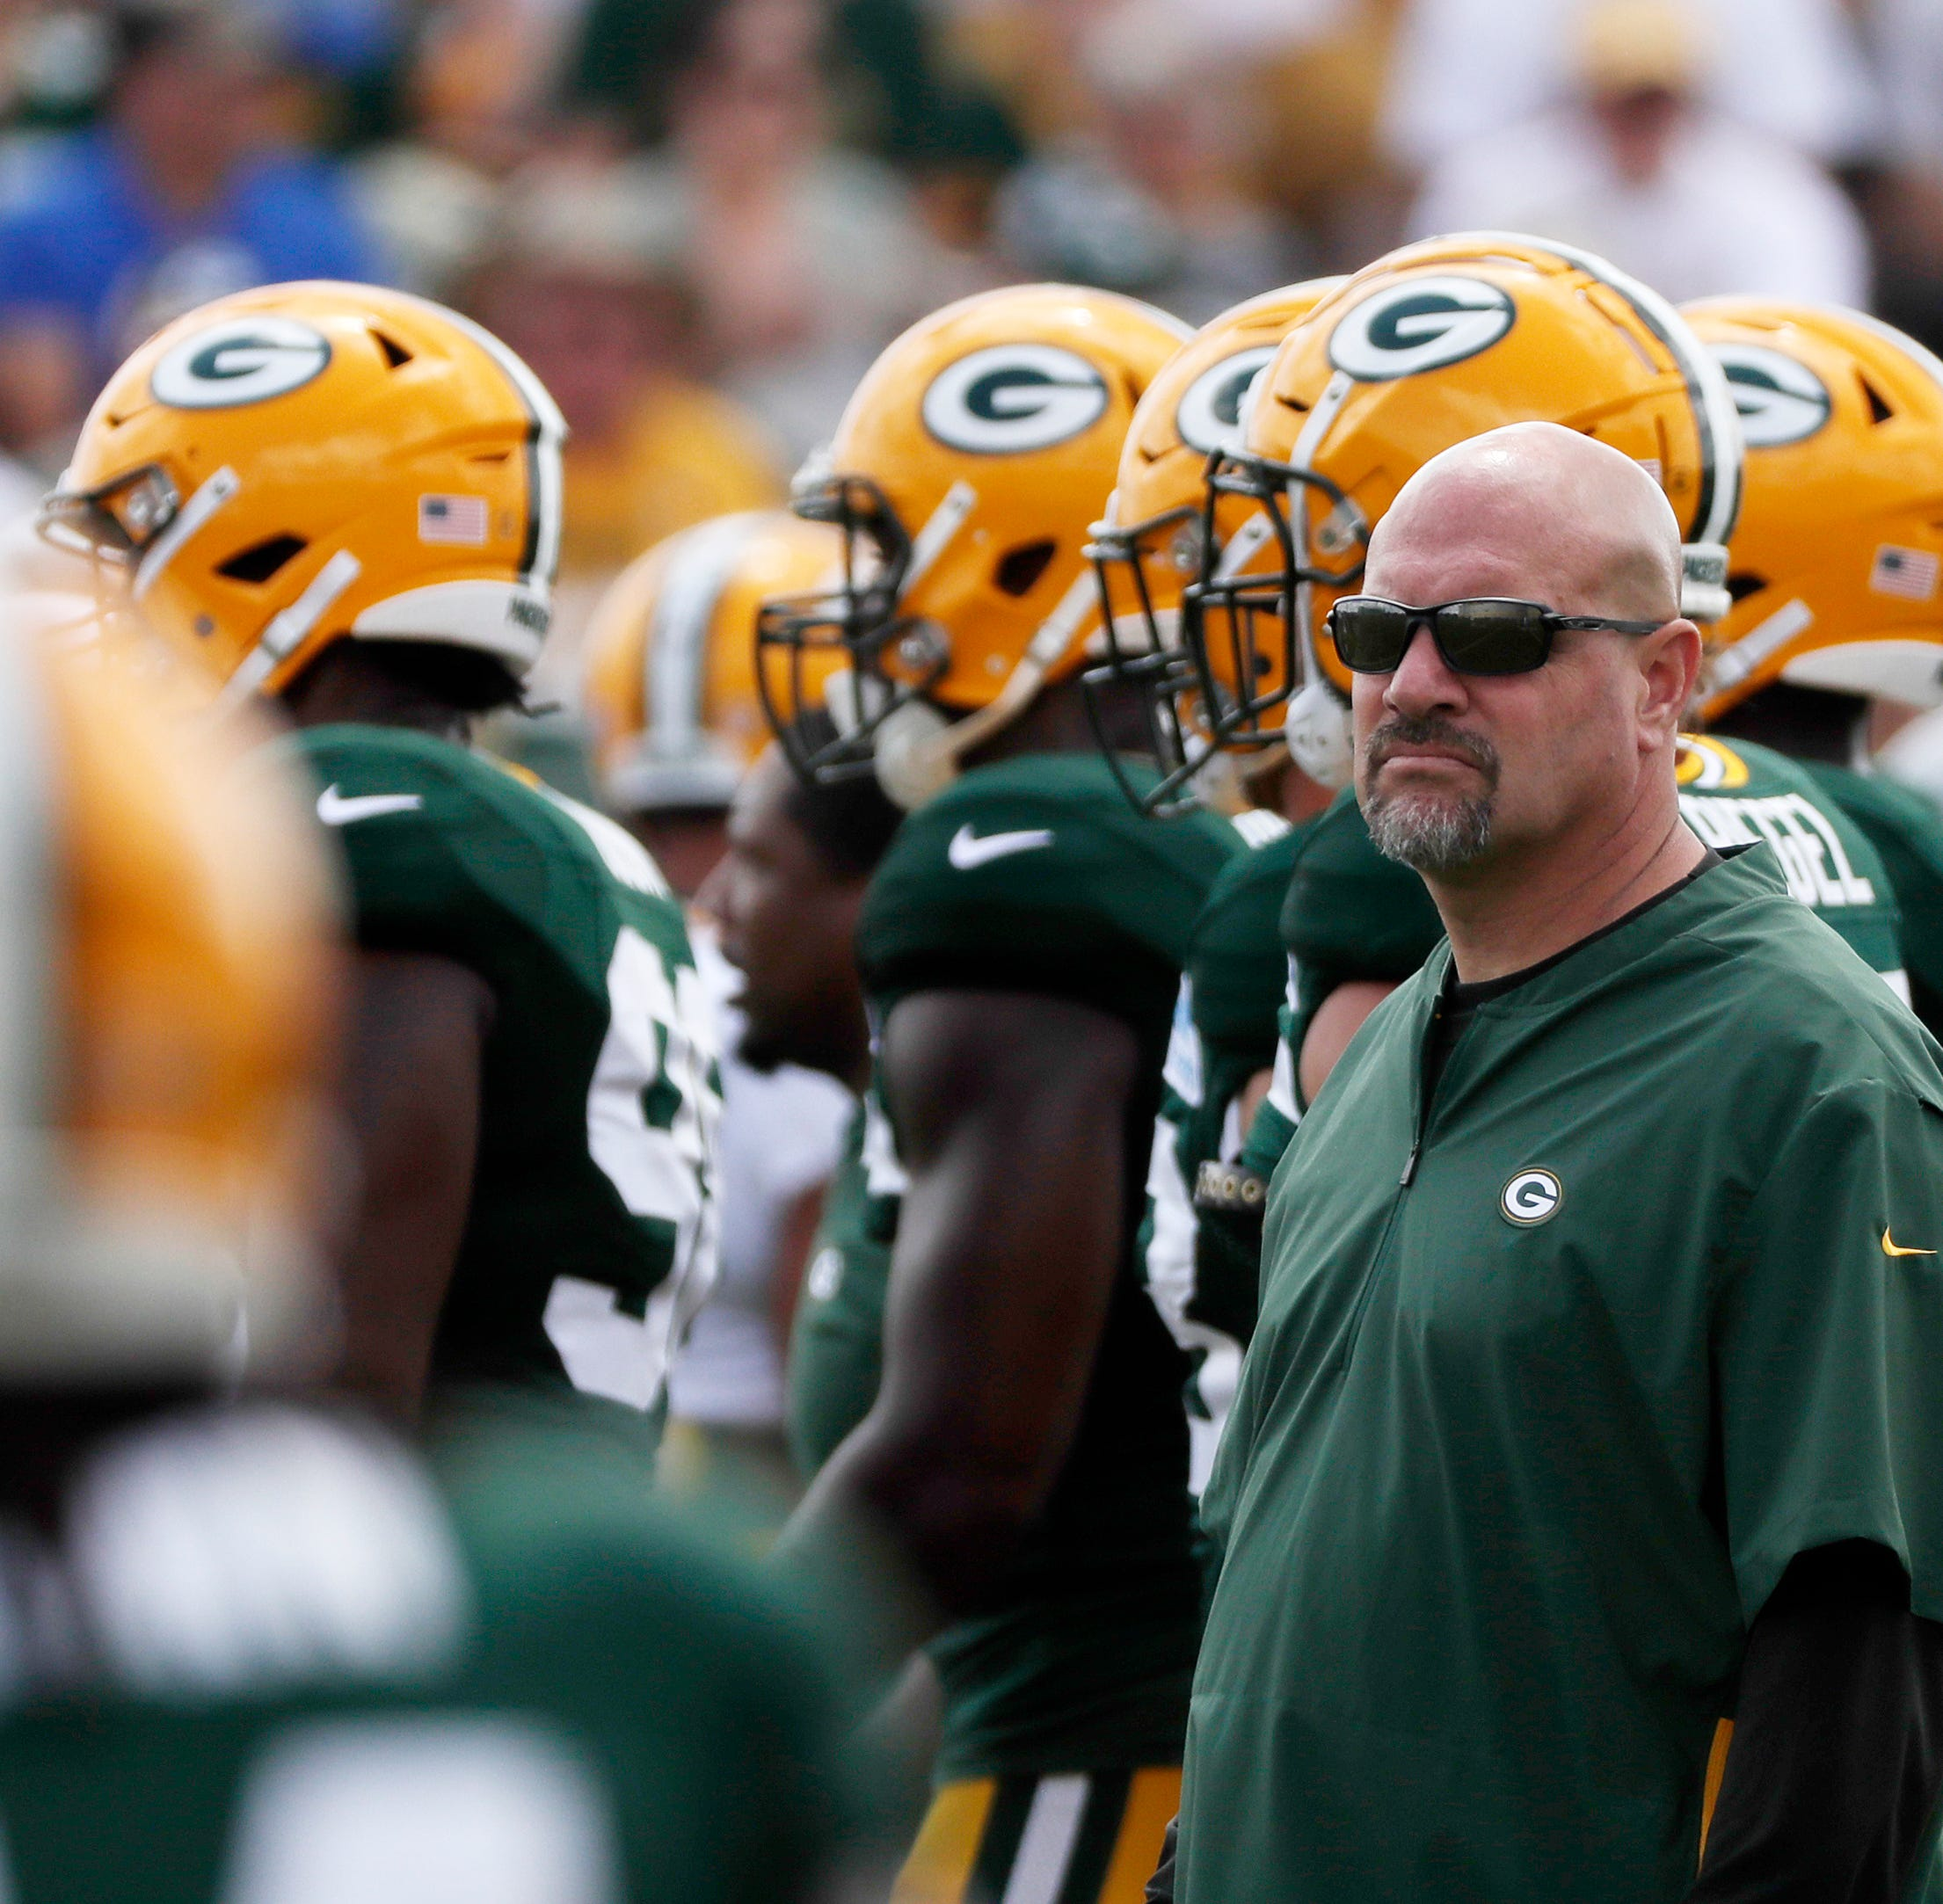 Green Bay Packers defensive coordinator Mike Pettine watches during training camp practice at Ray Nitschke Field on Friday, August 3, 2018, in Ashwaubenon, Wis.